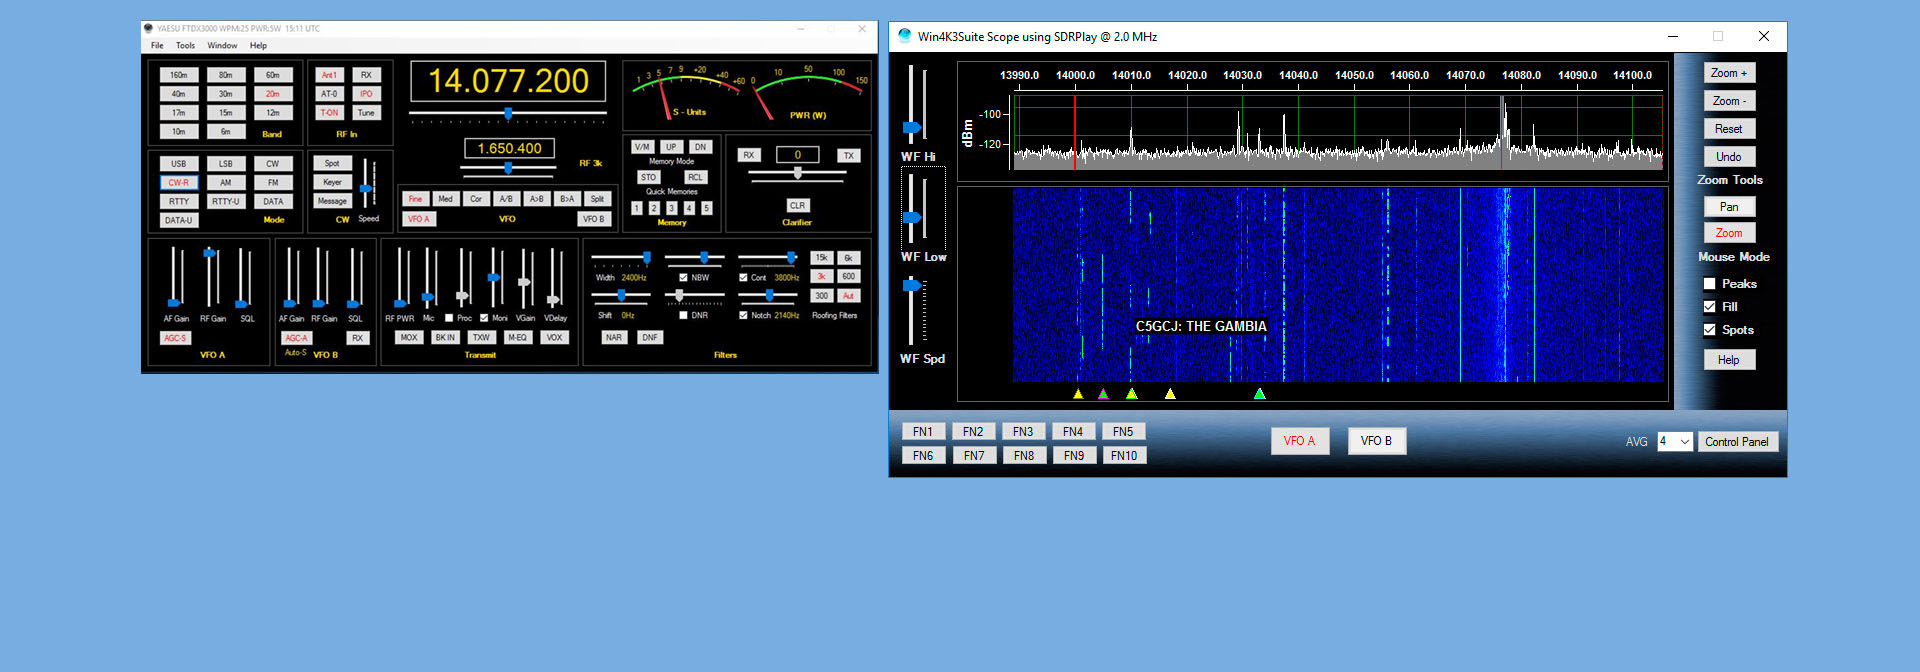 SDRPlay - Win4YaesuSuite for the FTDX and FT-991 Radios